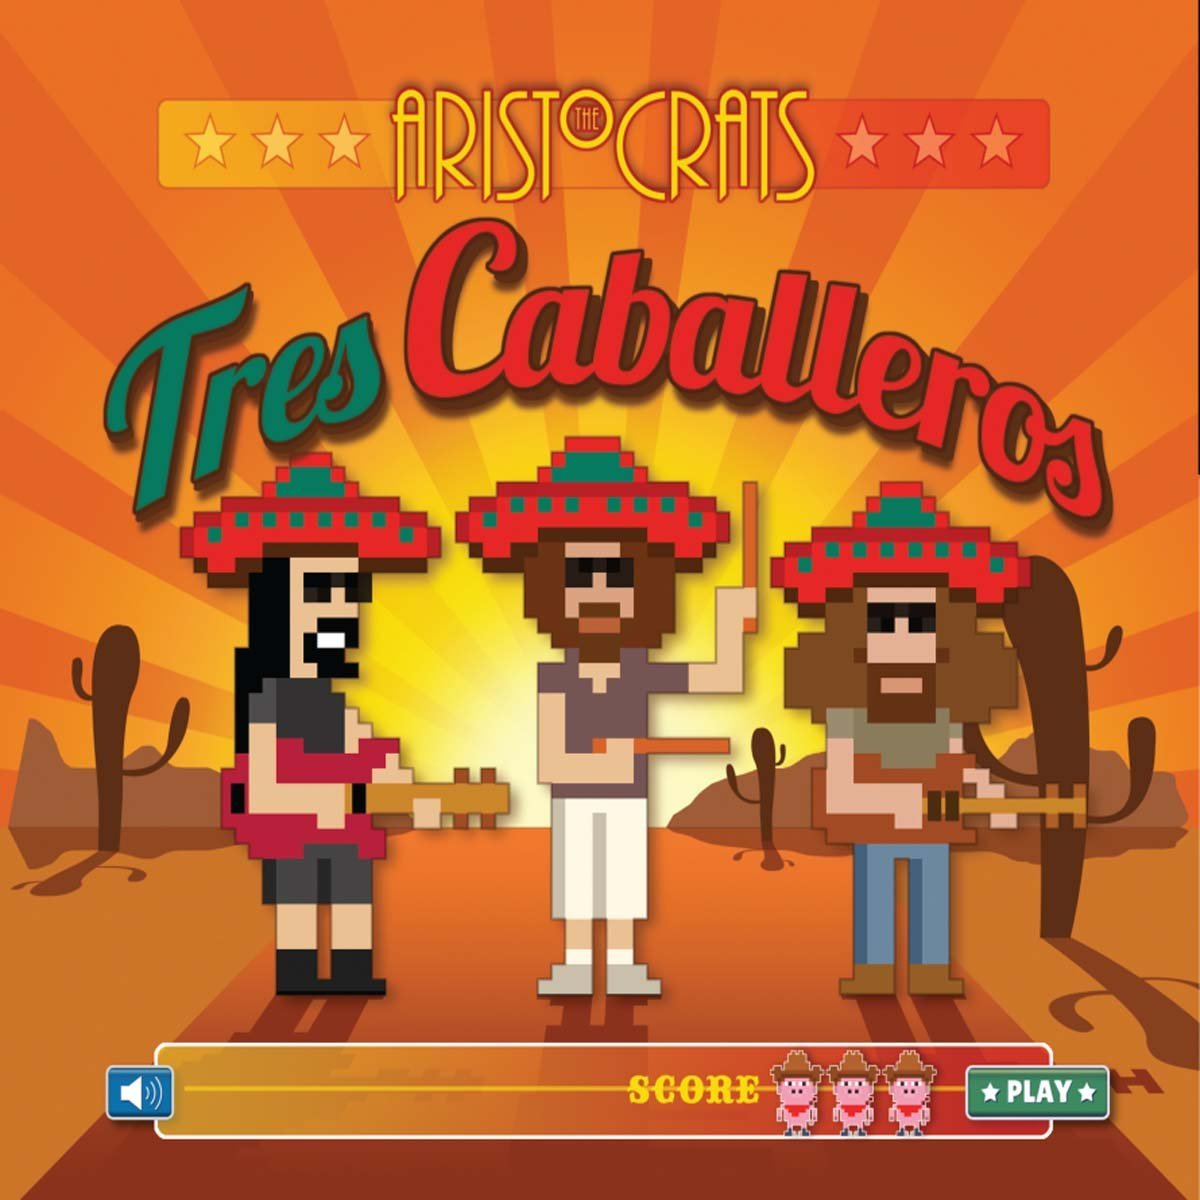 The Aristocrats — Tres Caballeros